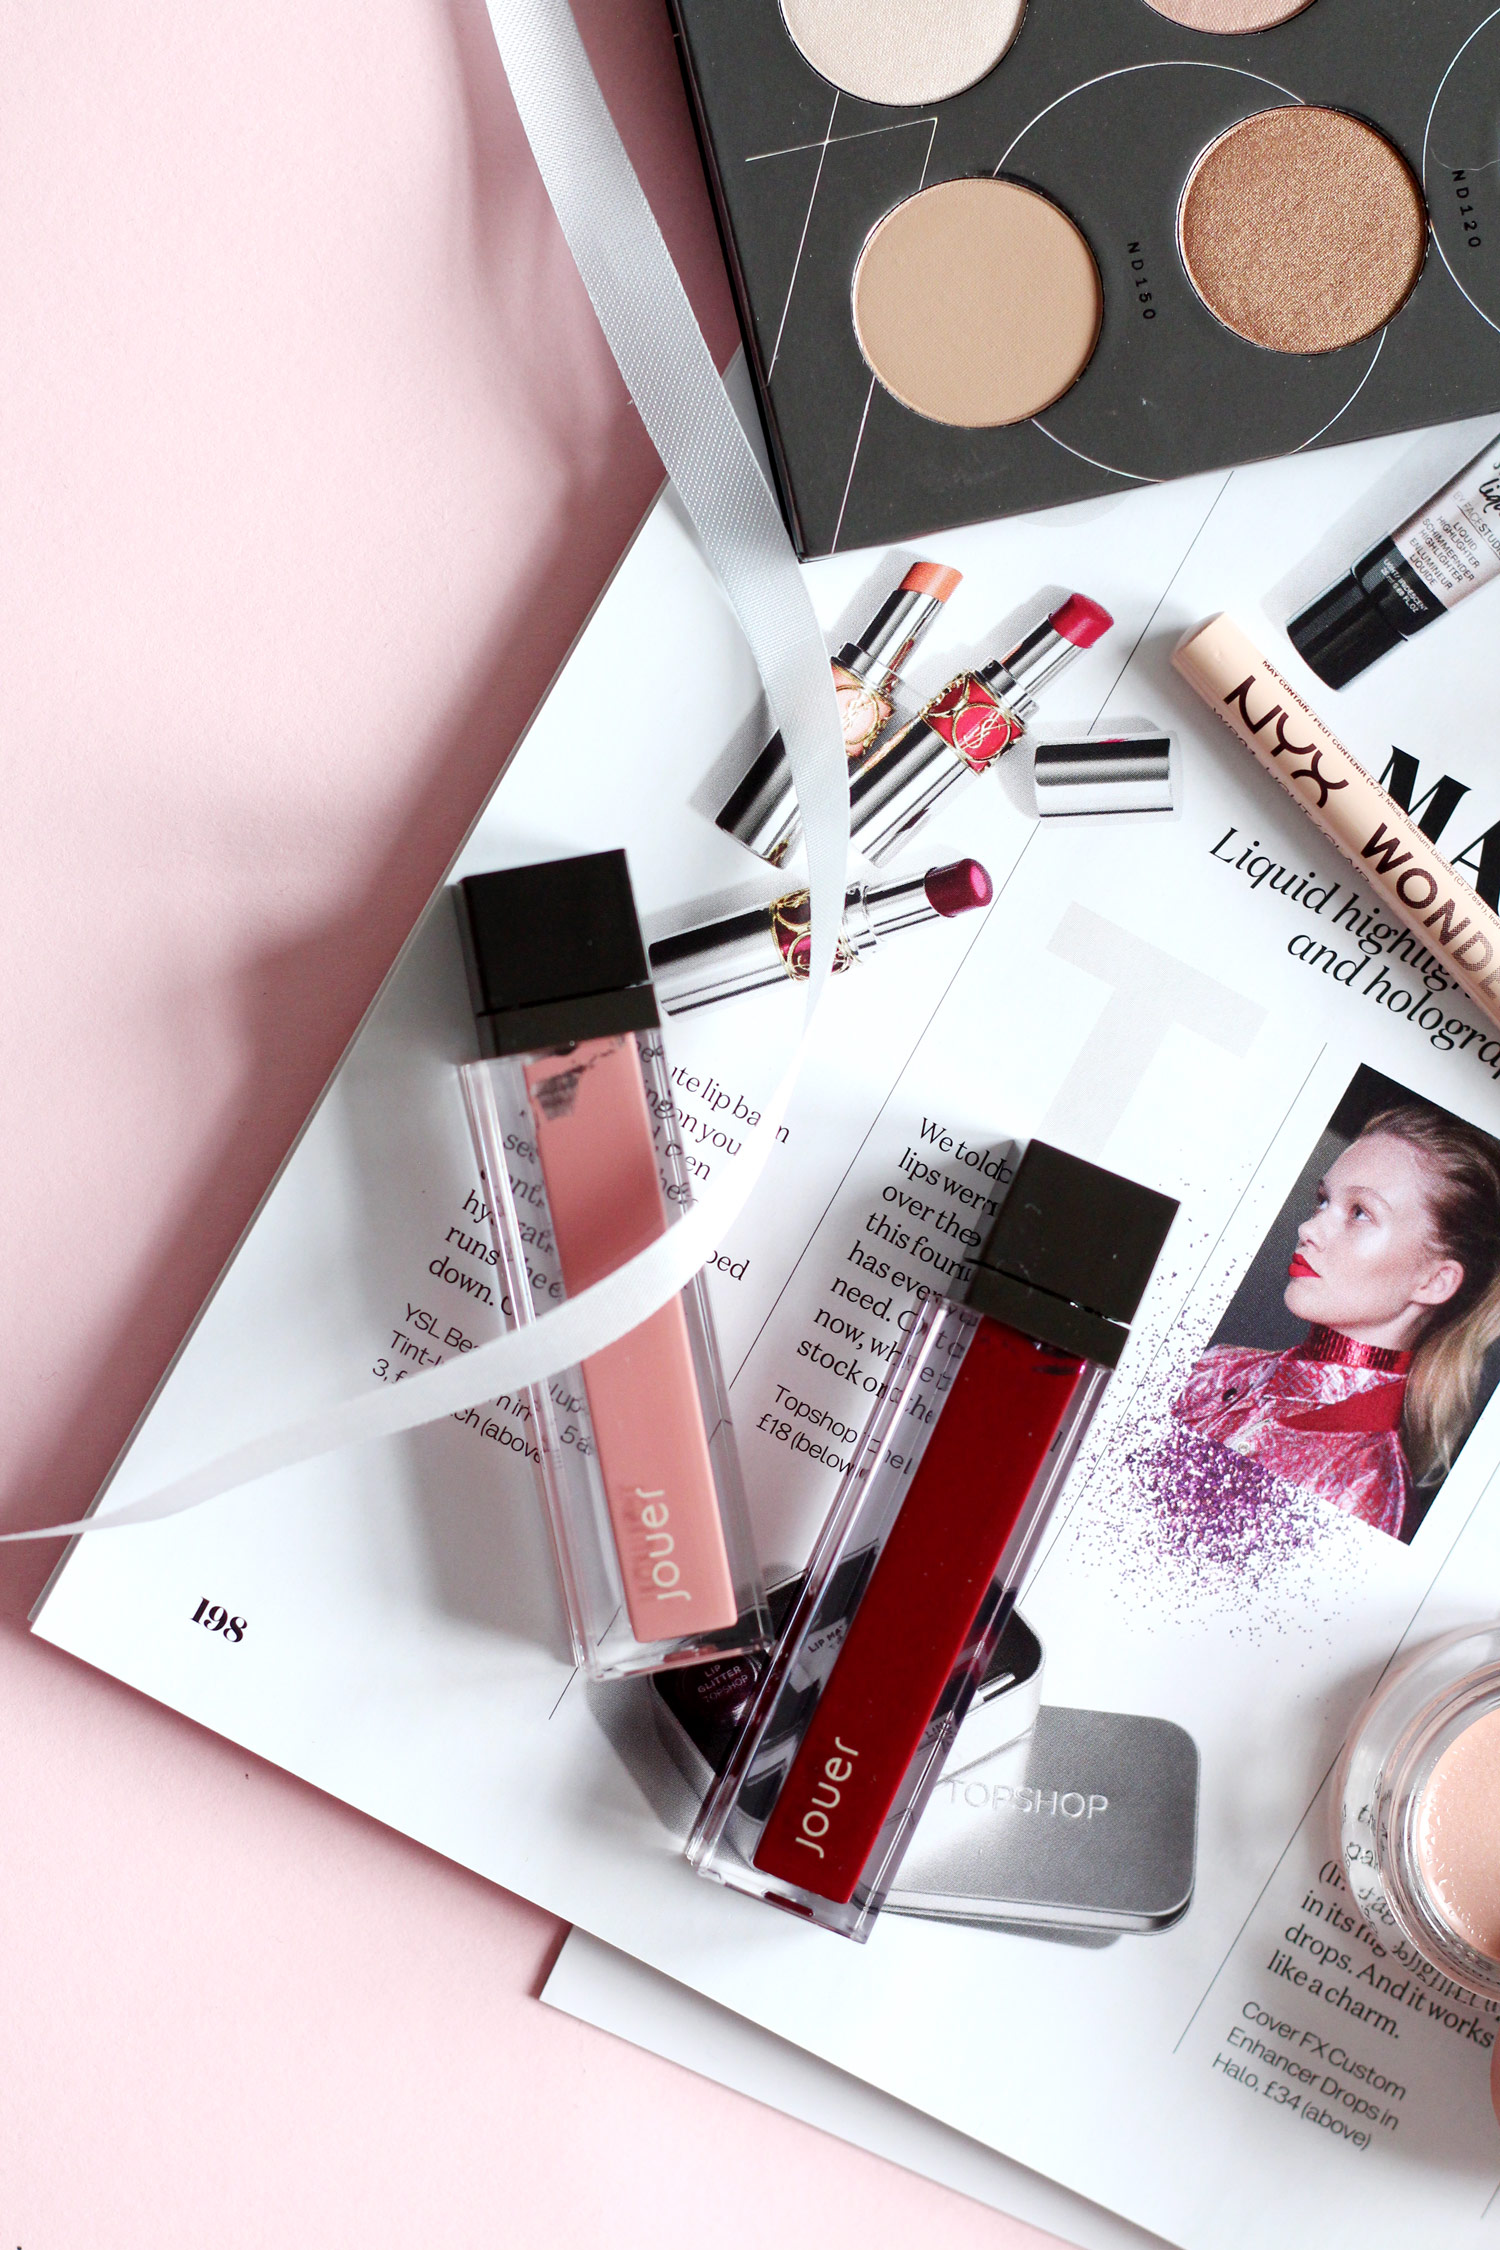 cult-beauty-haul-jouer-lip-charlotte-tilbury-pillow-talk-2